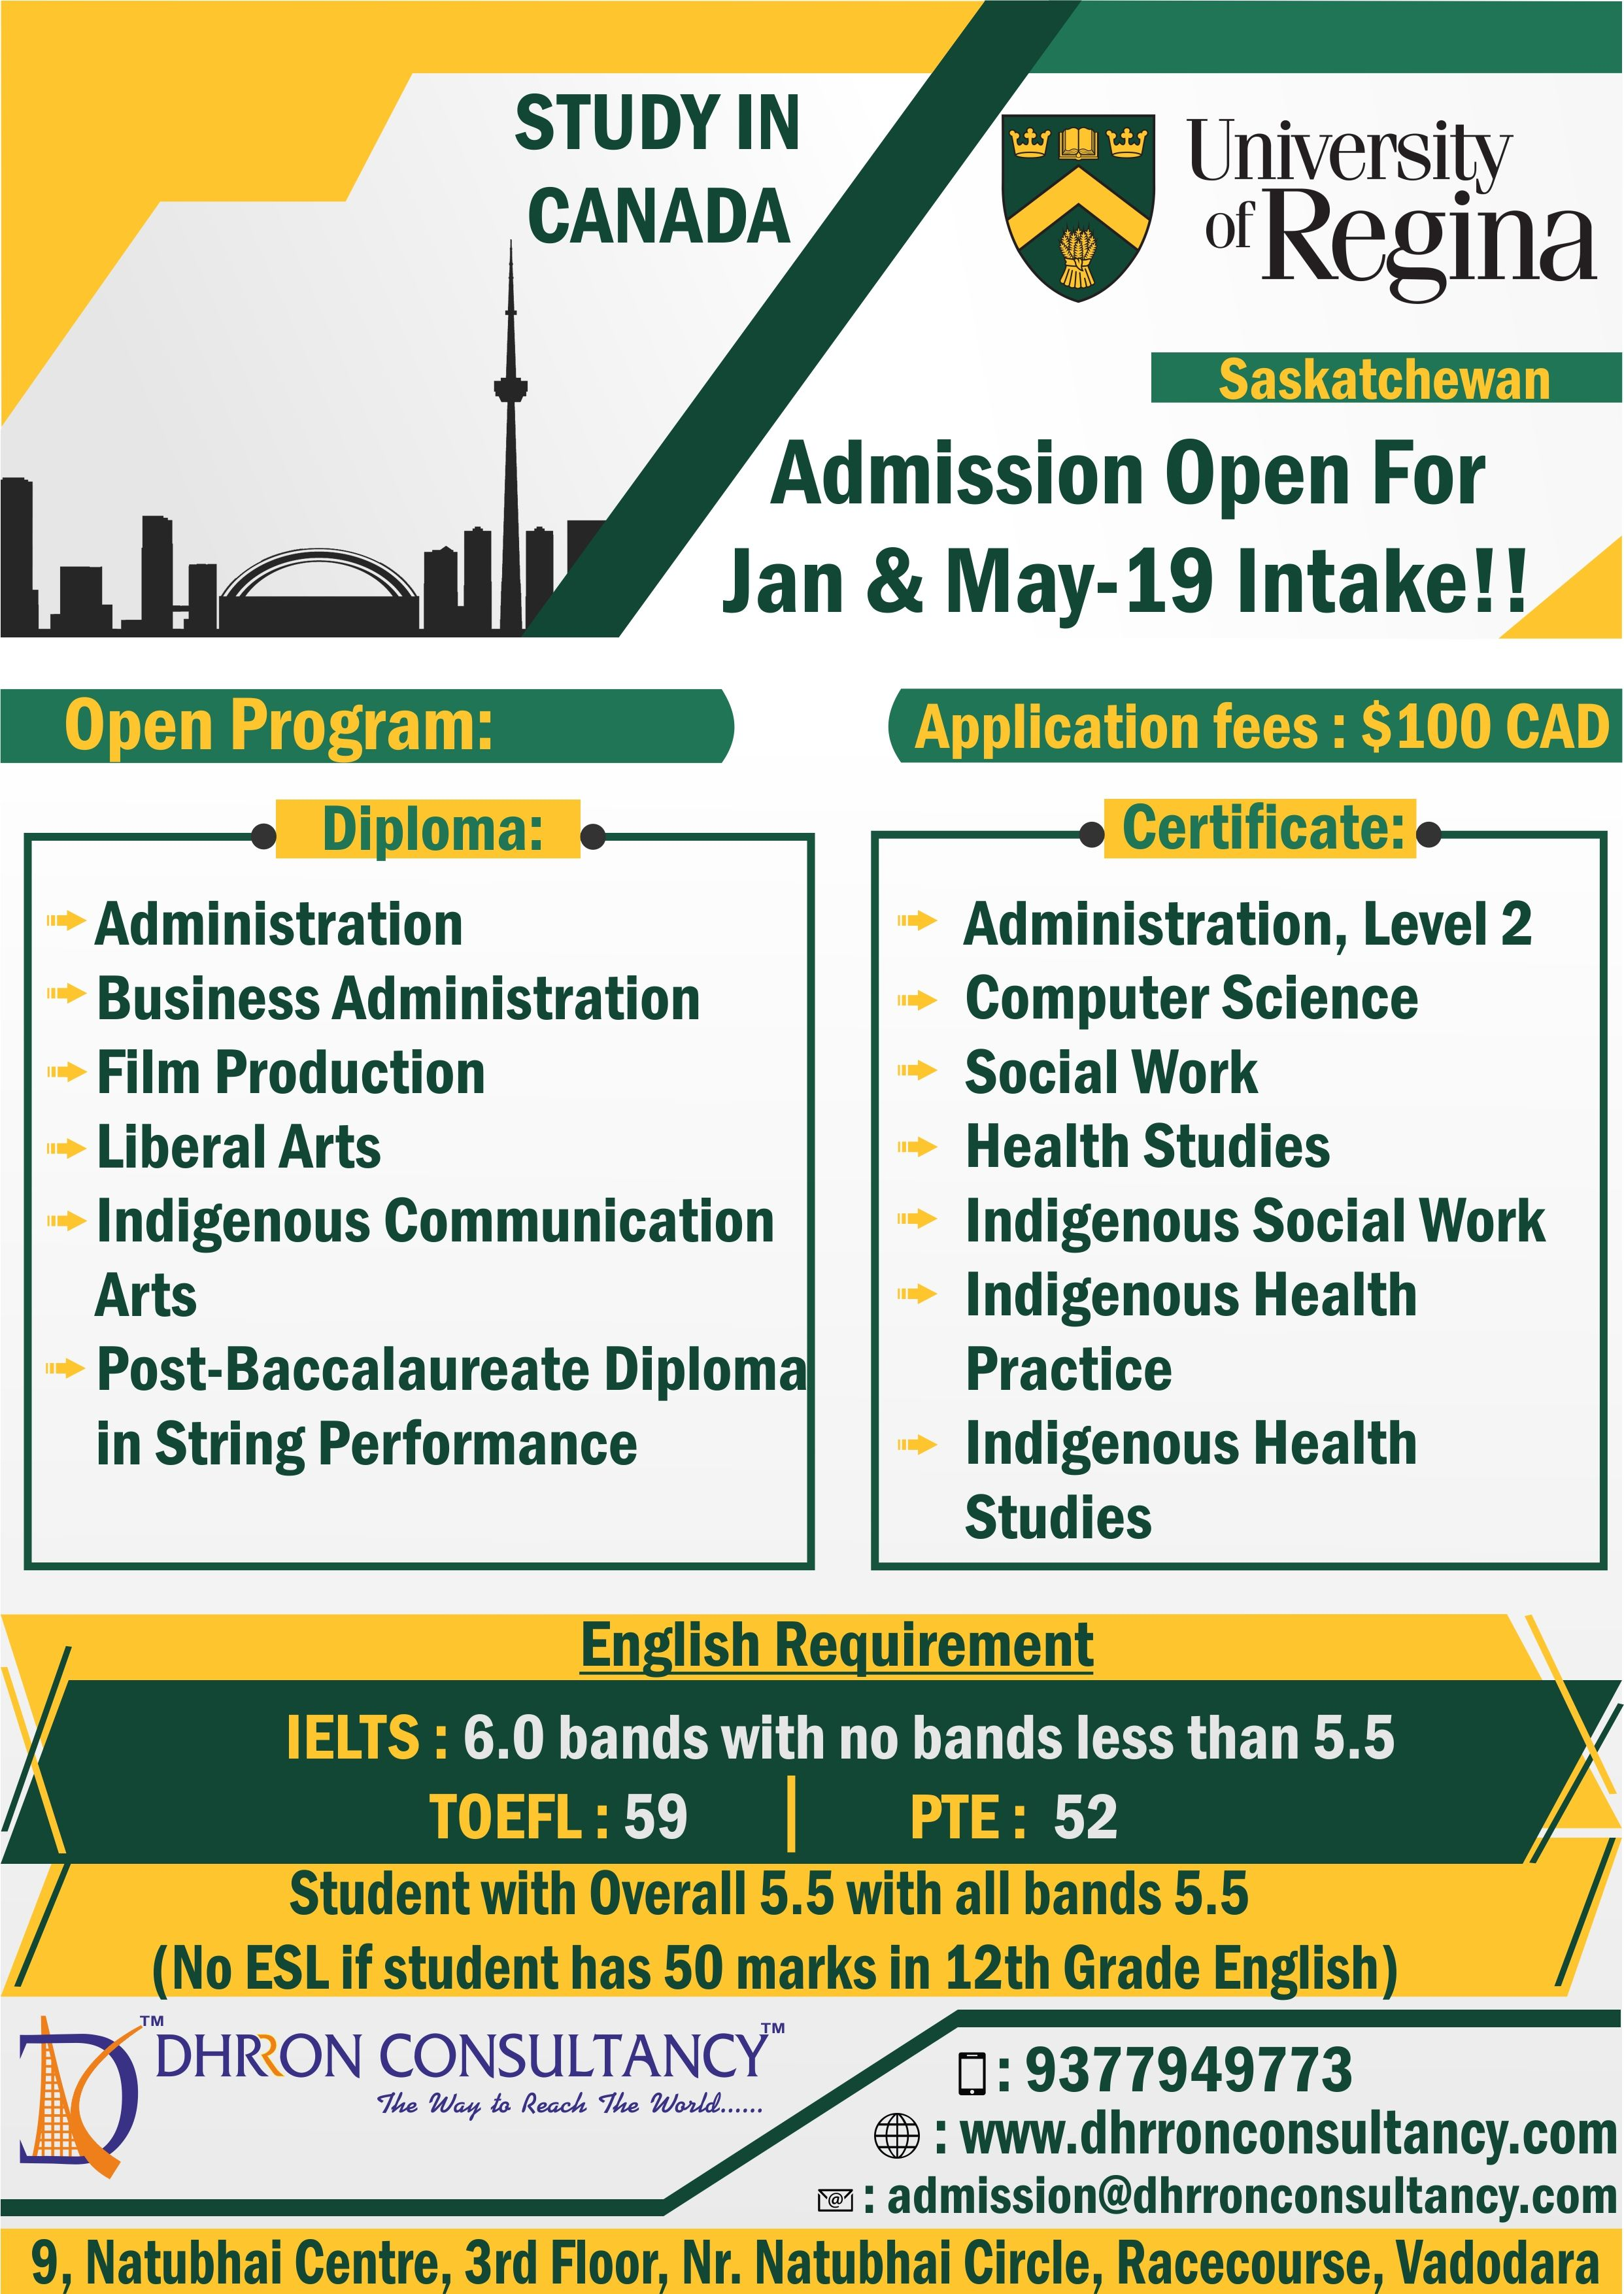 Do you want to study in canada apply in university of